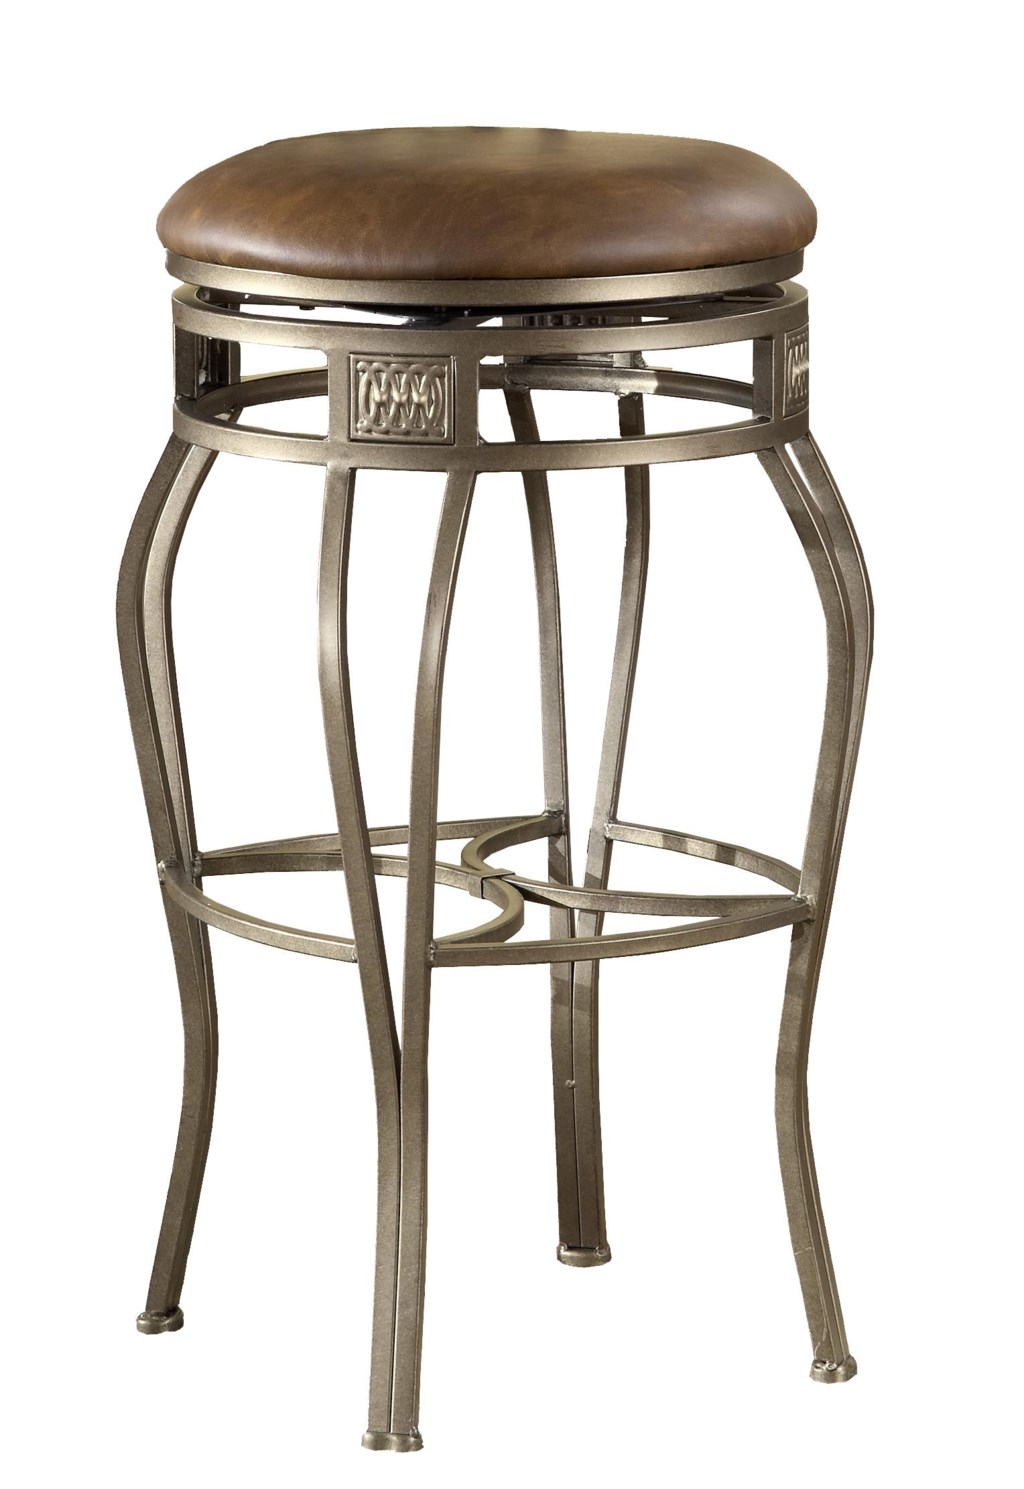 Hillsdale Backless Bar Stools 26 Backless Montello Swivel Counter